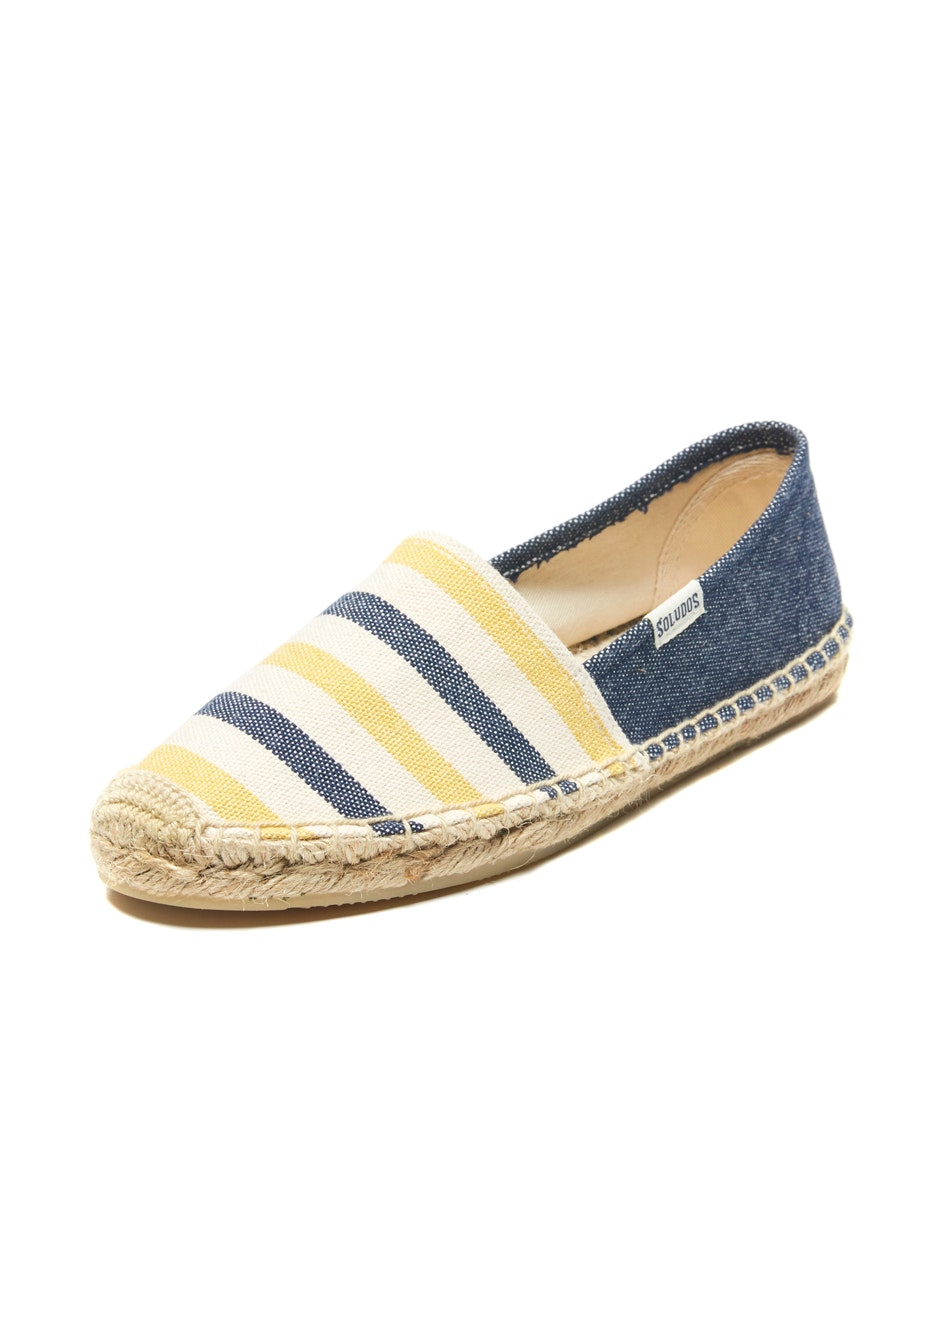 Soludos - Original Dali Striped - Navy/Yellow